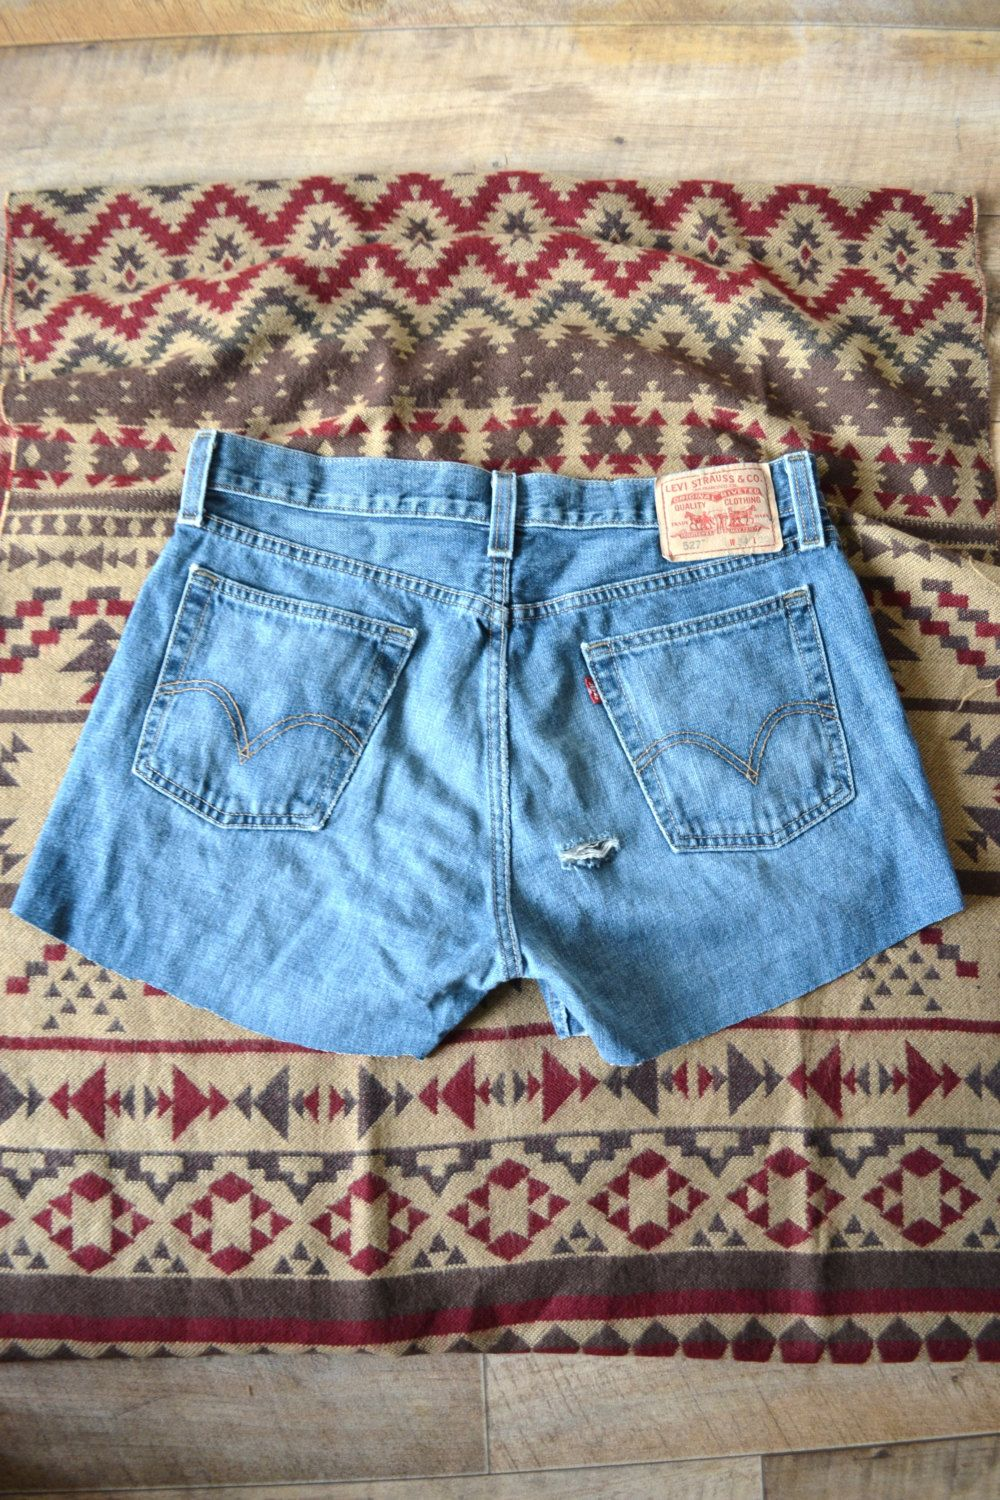 Vintage Levi's Cut Off High Waisted Denim Shorts (14.67 GBP) by MODERNOUTLAW